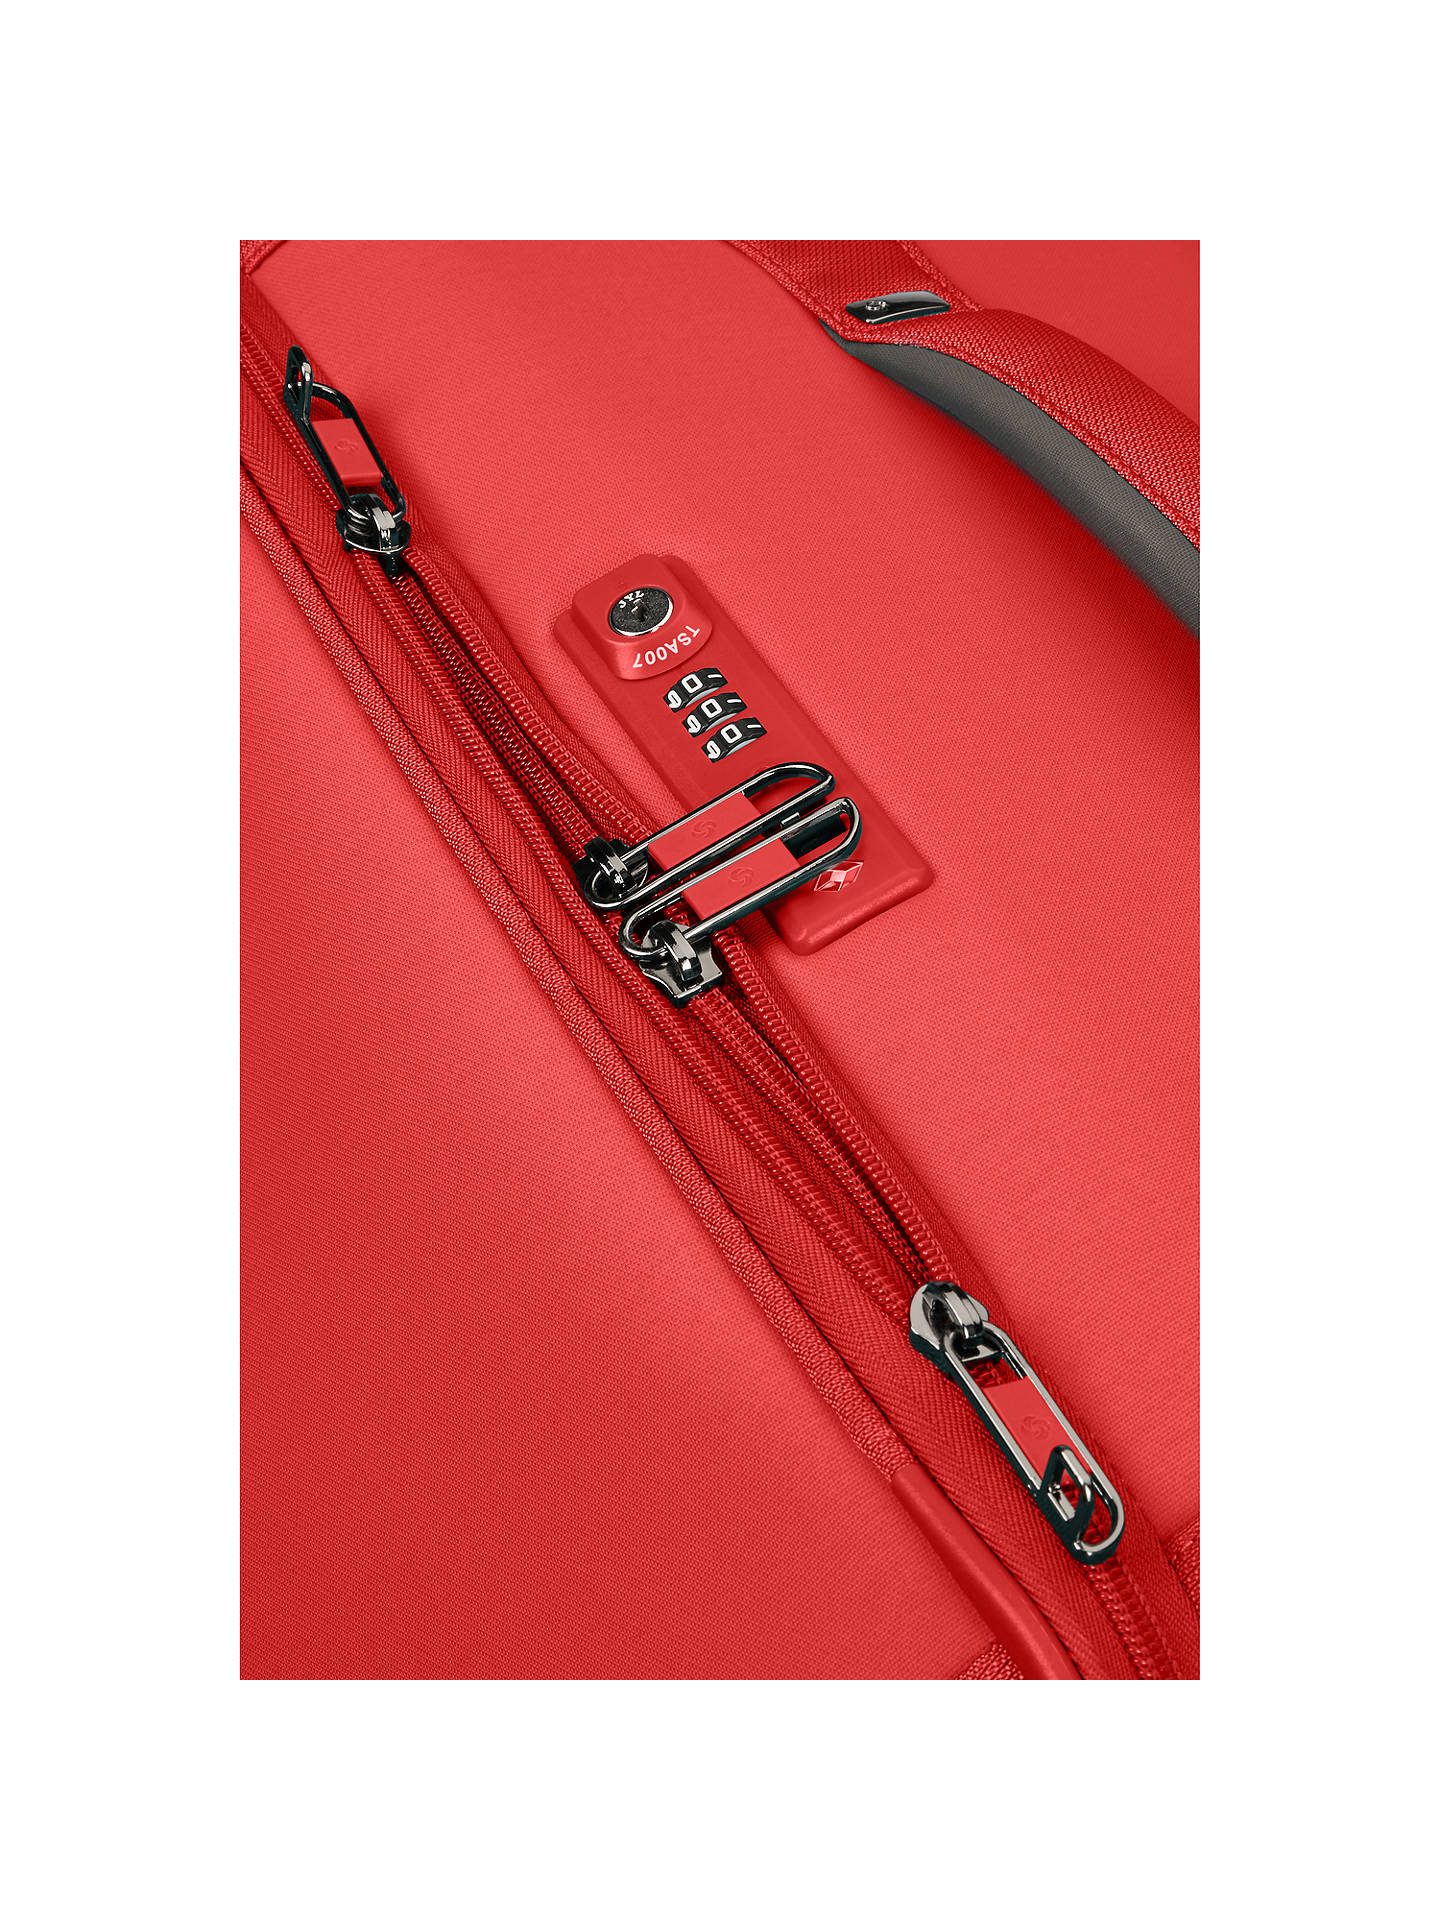 BuySamsonite Uplite 4-Wheel 67cm Spinner Suitcase, Red Online at johnlewis.com